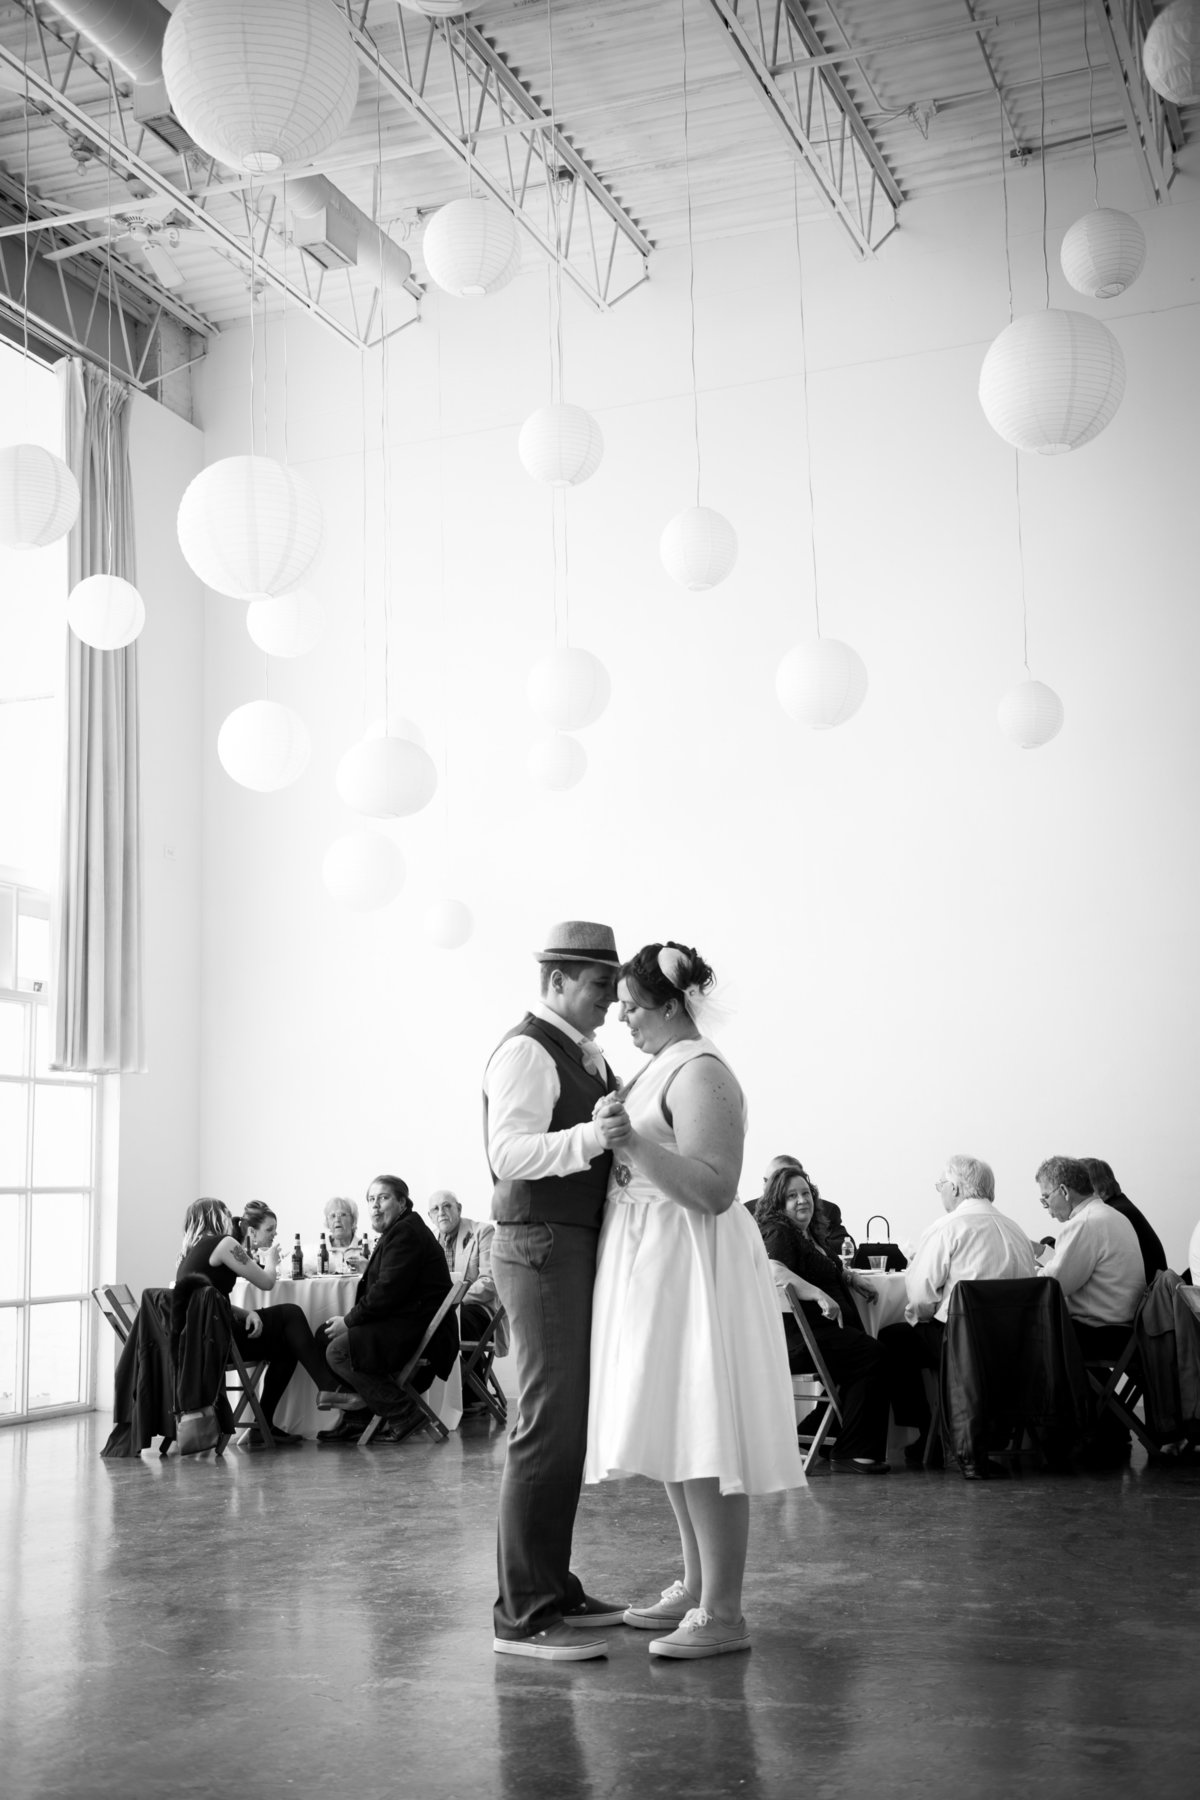 Bride and groom share first dance at reception, wedding, Chicago.